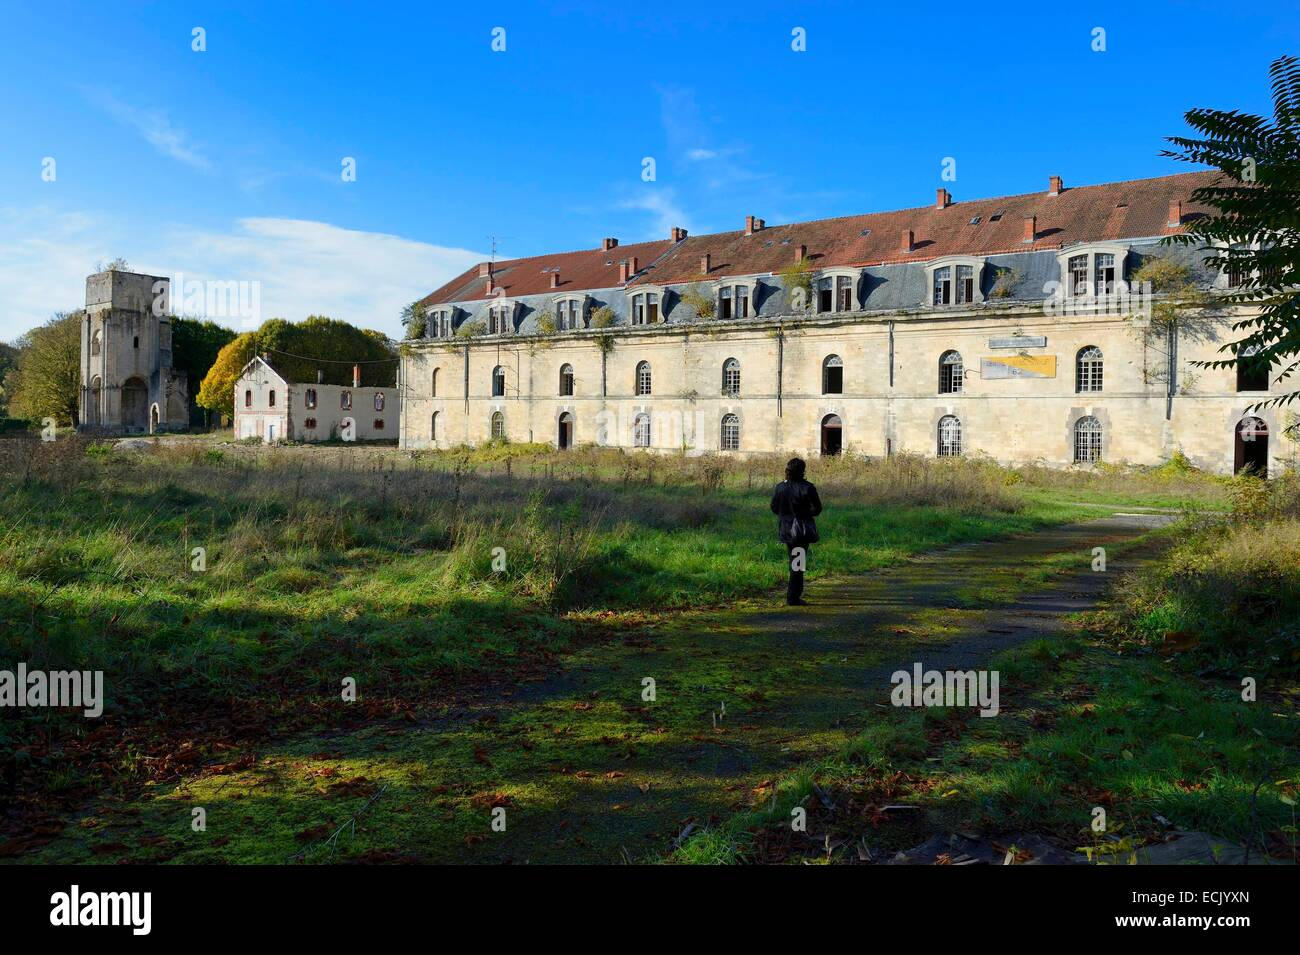 France, Meuse, Verdun, the citadel, Beaurepaire barracks and the old tower of Saint Vanne that is a vestige of the - Stock Image